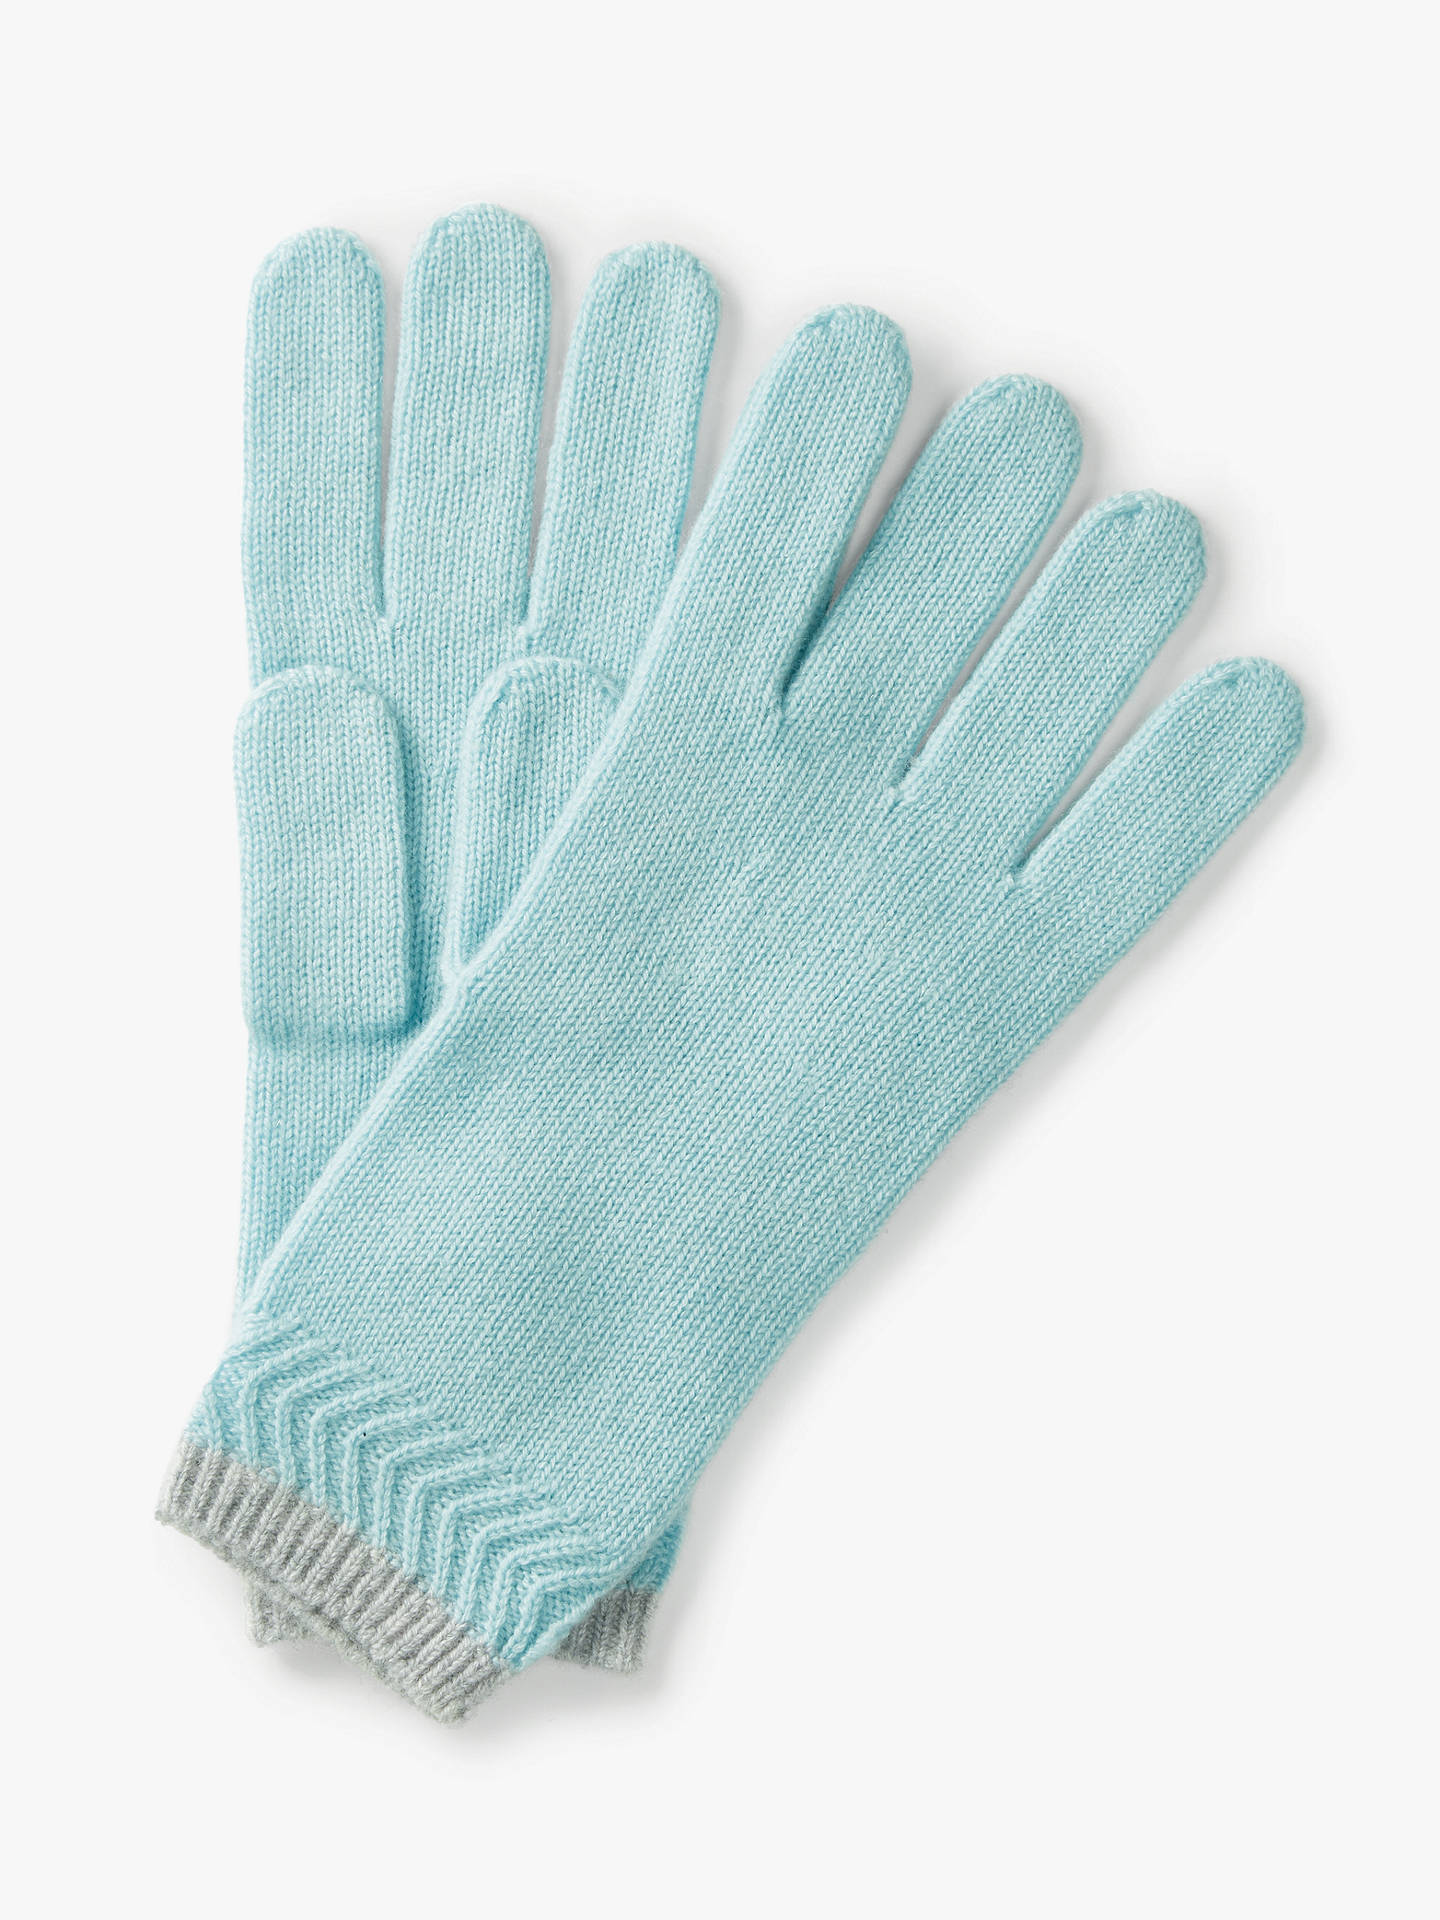 BuyPure Collection Cashmere Gloves, Light Blue, One Size Online at johnlewis.com